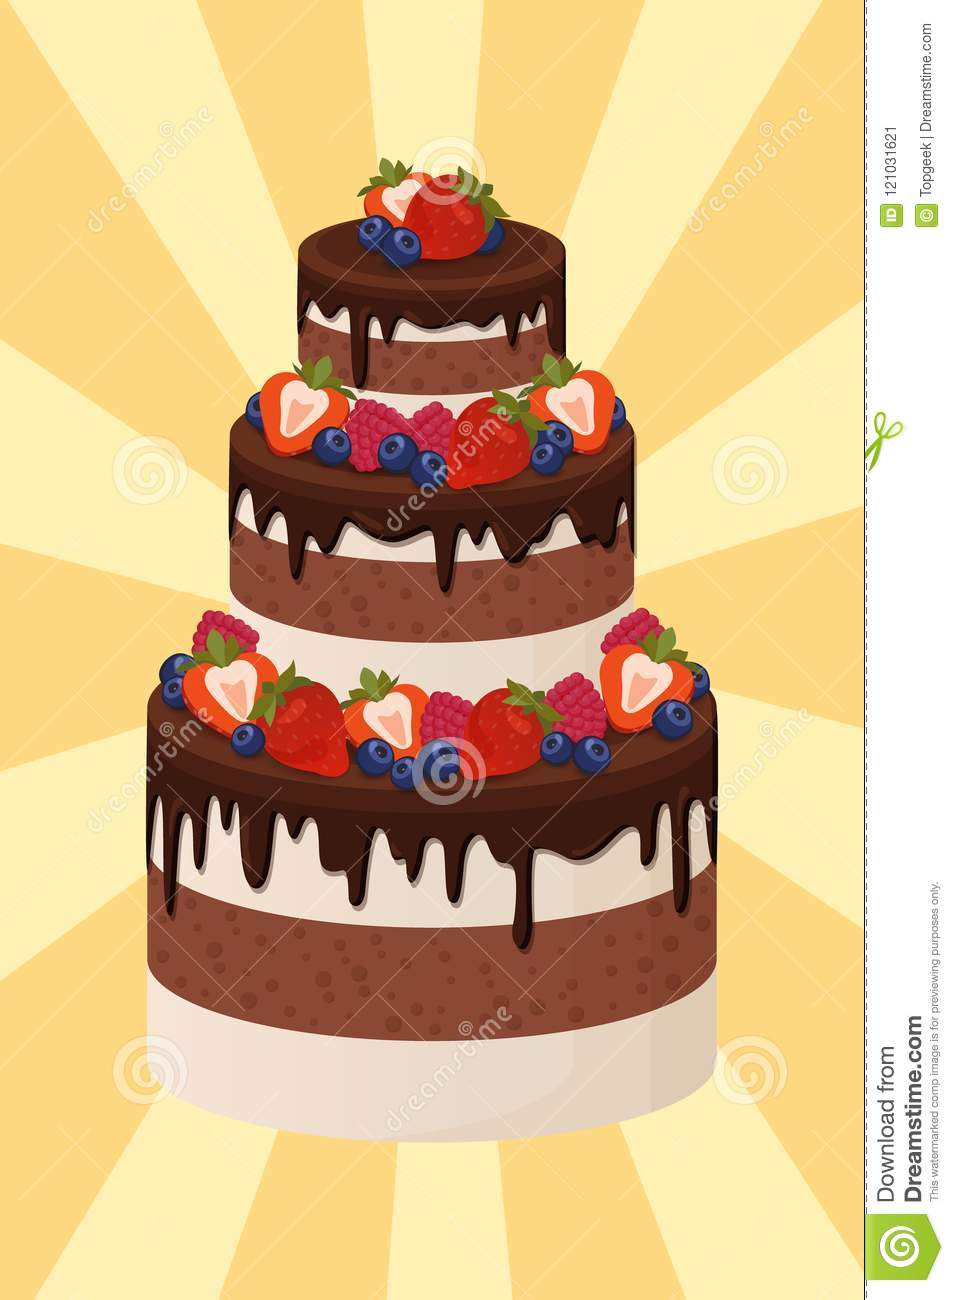 Three-Tier Cake With Chocolate And Cream Layers Stock Vector ...